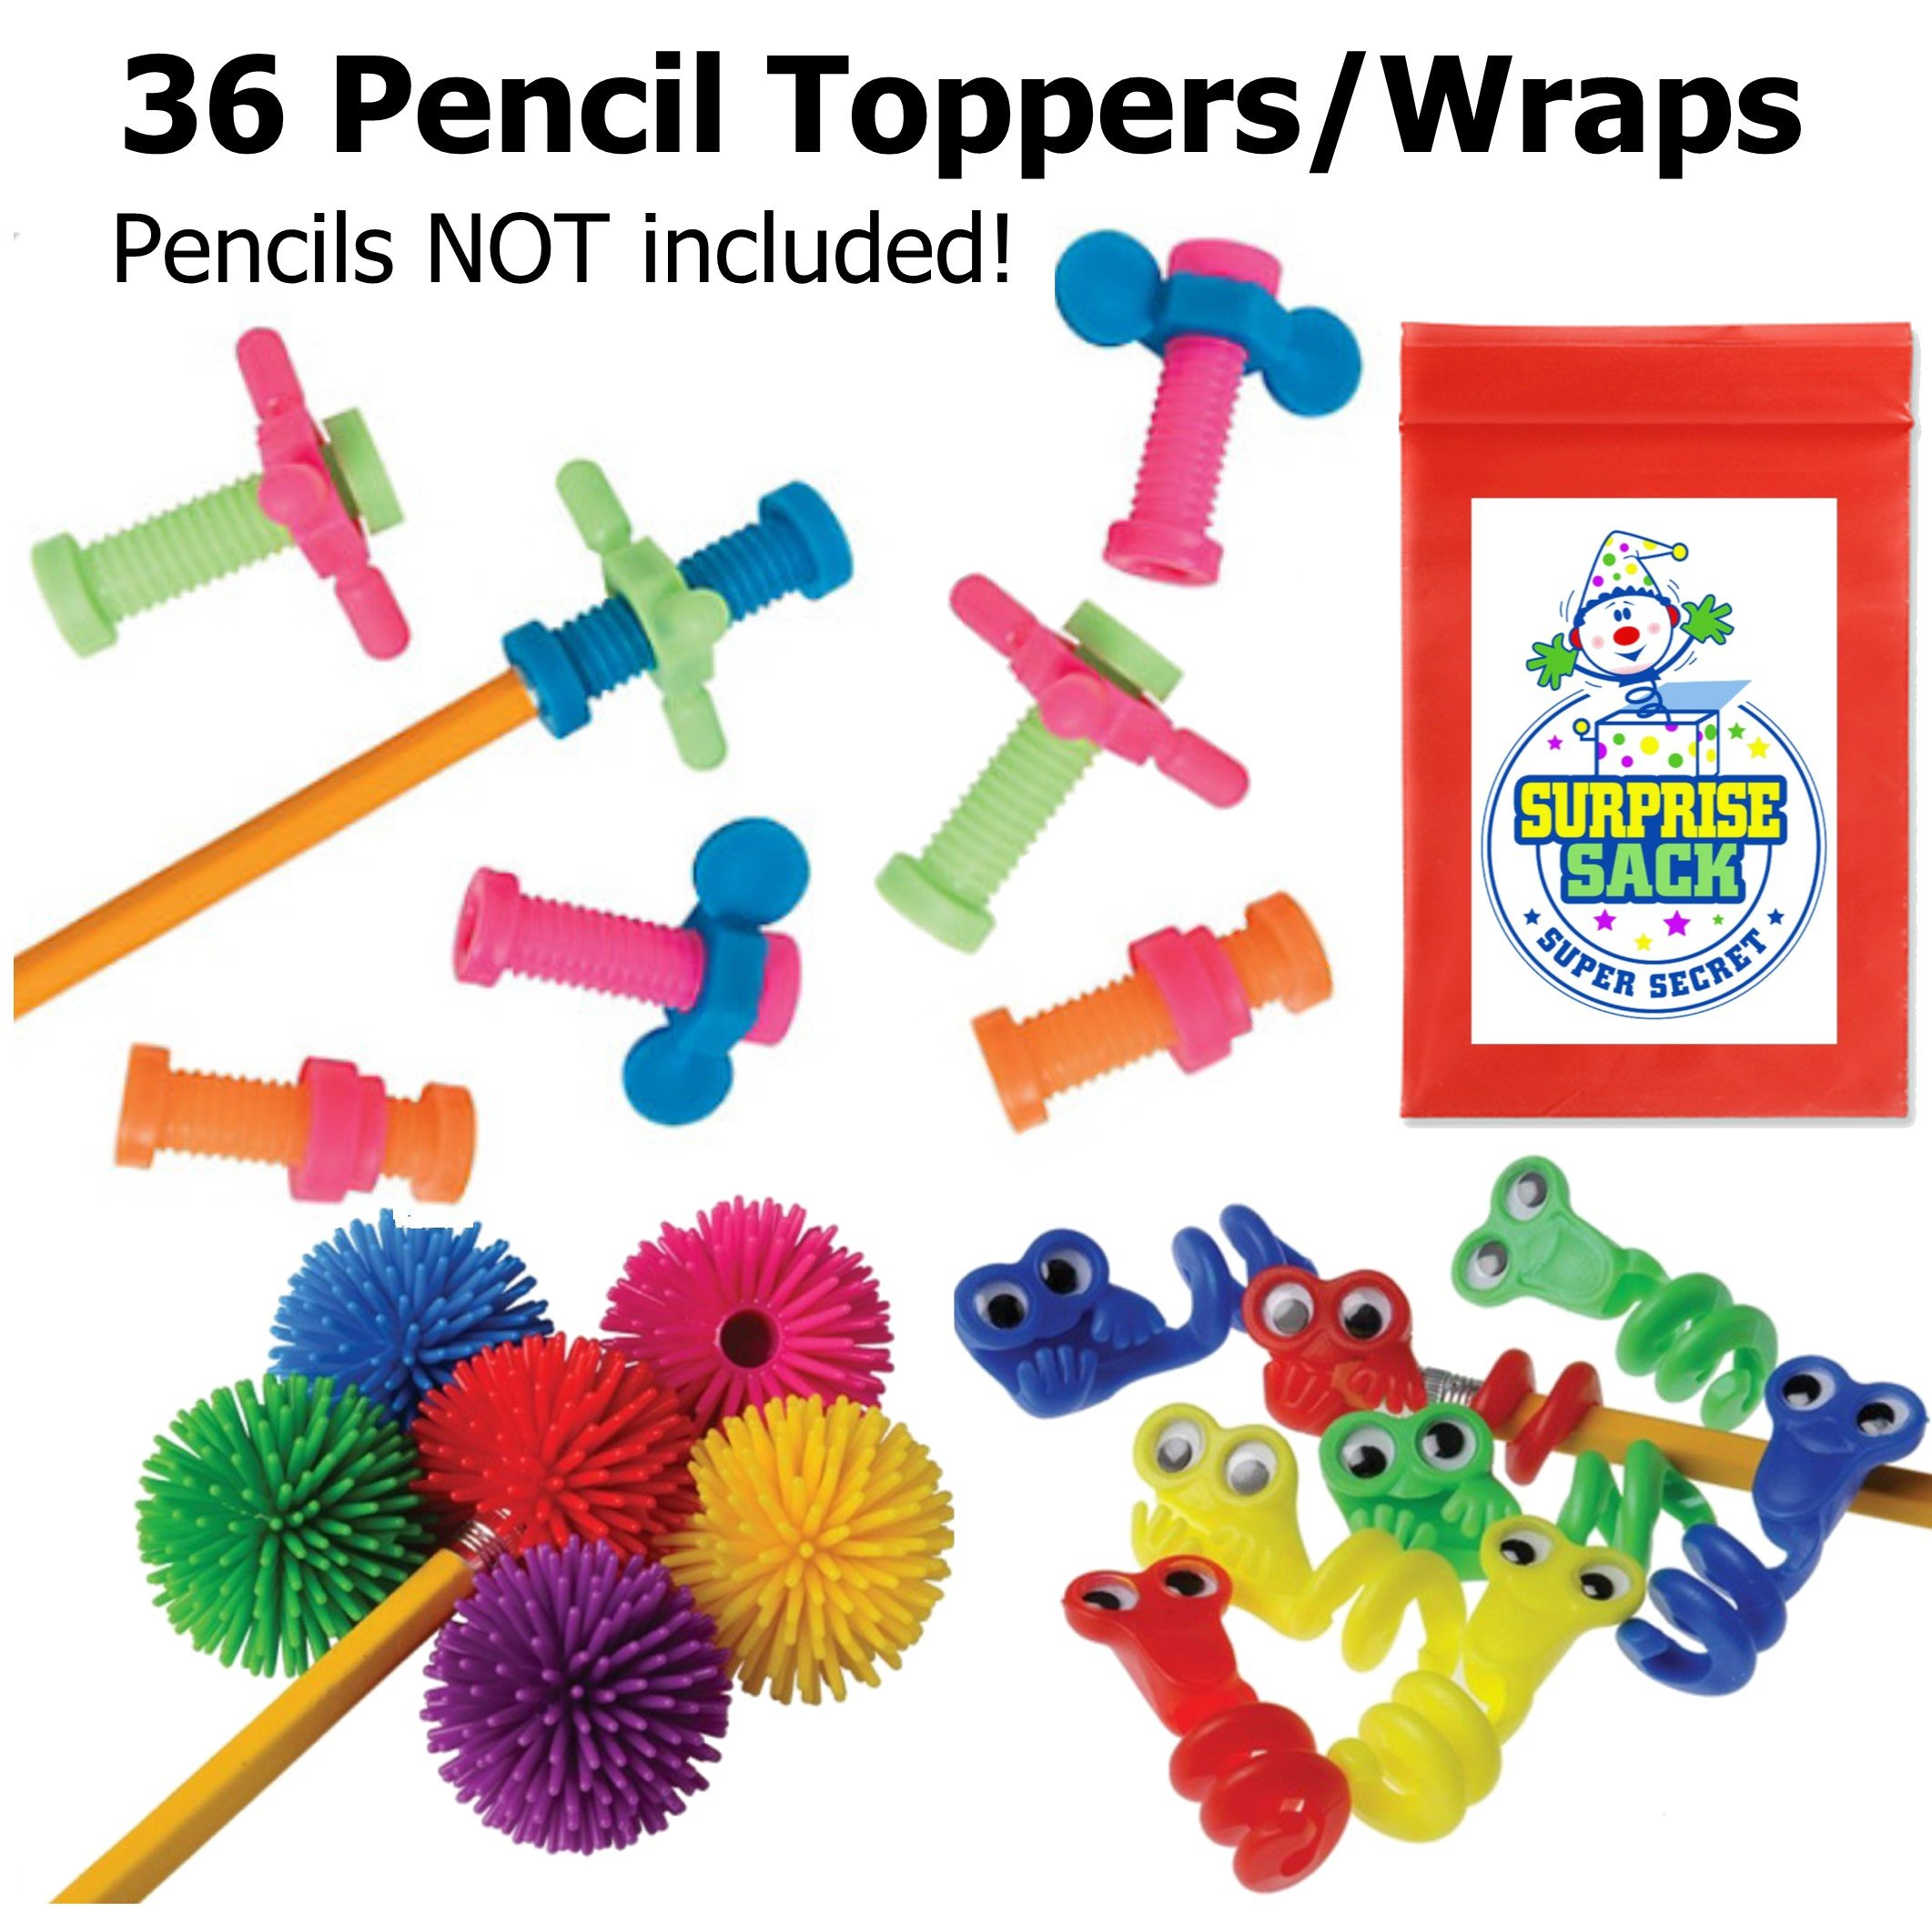 Super Secret Surprise Sack Triple Fidget Pencil Topper Pack (36 pc) with 1 by Super Secret Surprise Sack